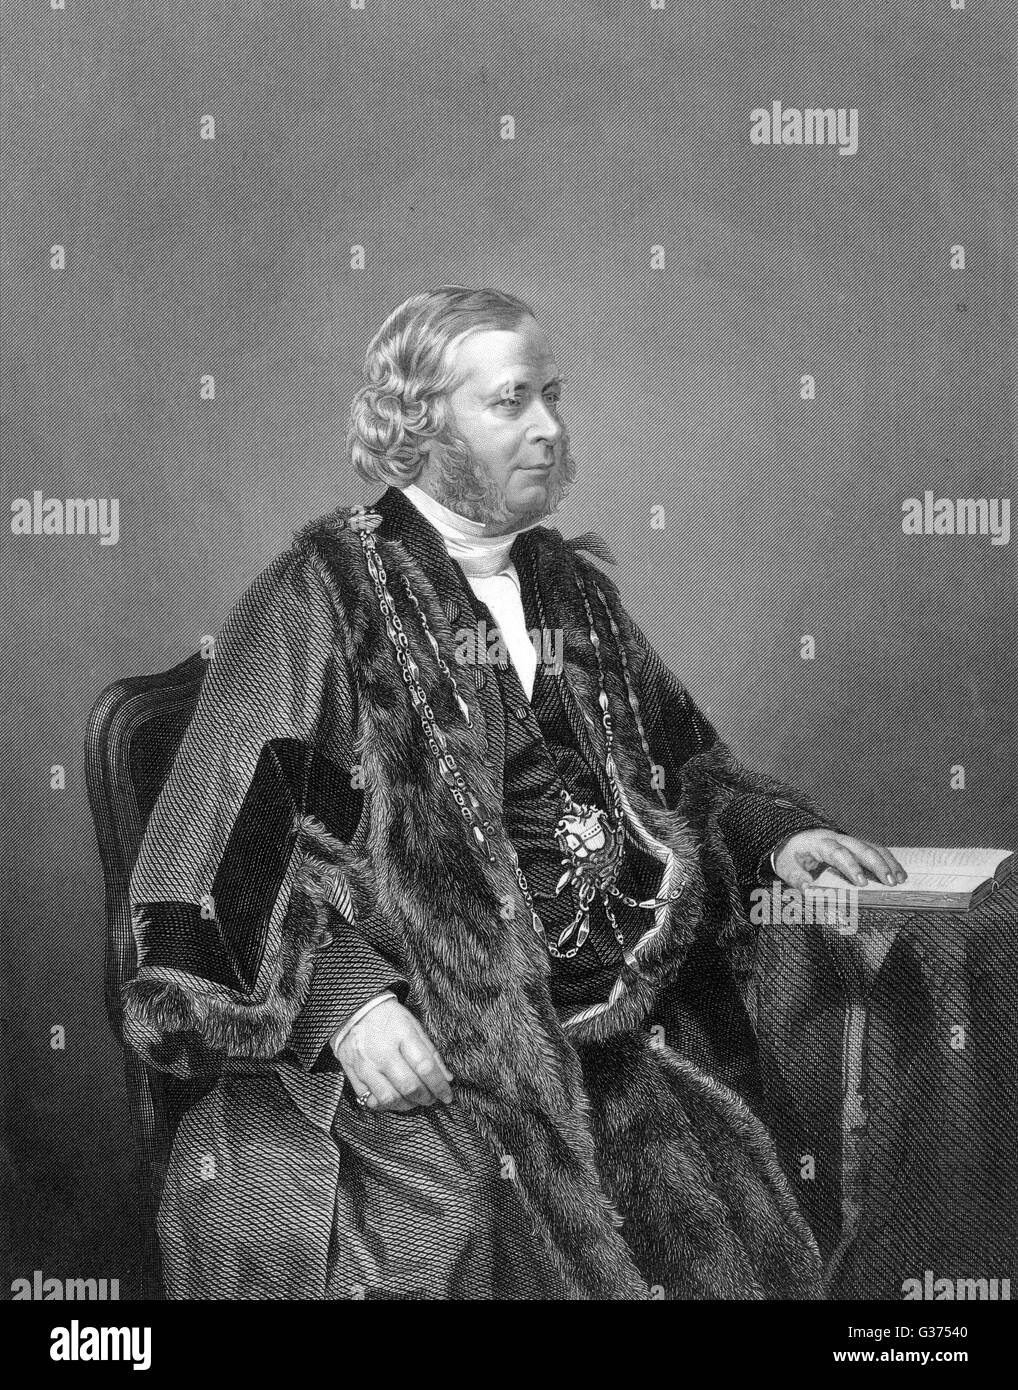 DAVID WILLIAMS WIRE Lord Mayor of London in 1858         Date: CIRCA 1858 - Stock Image